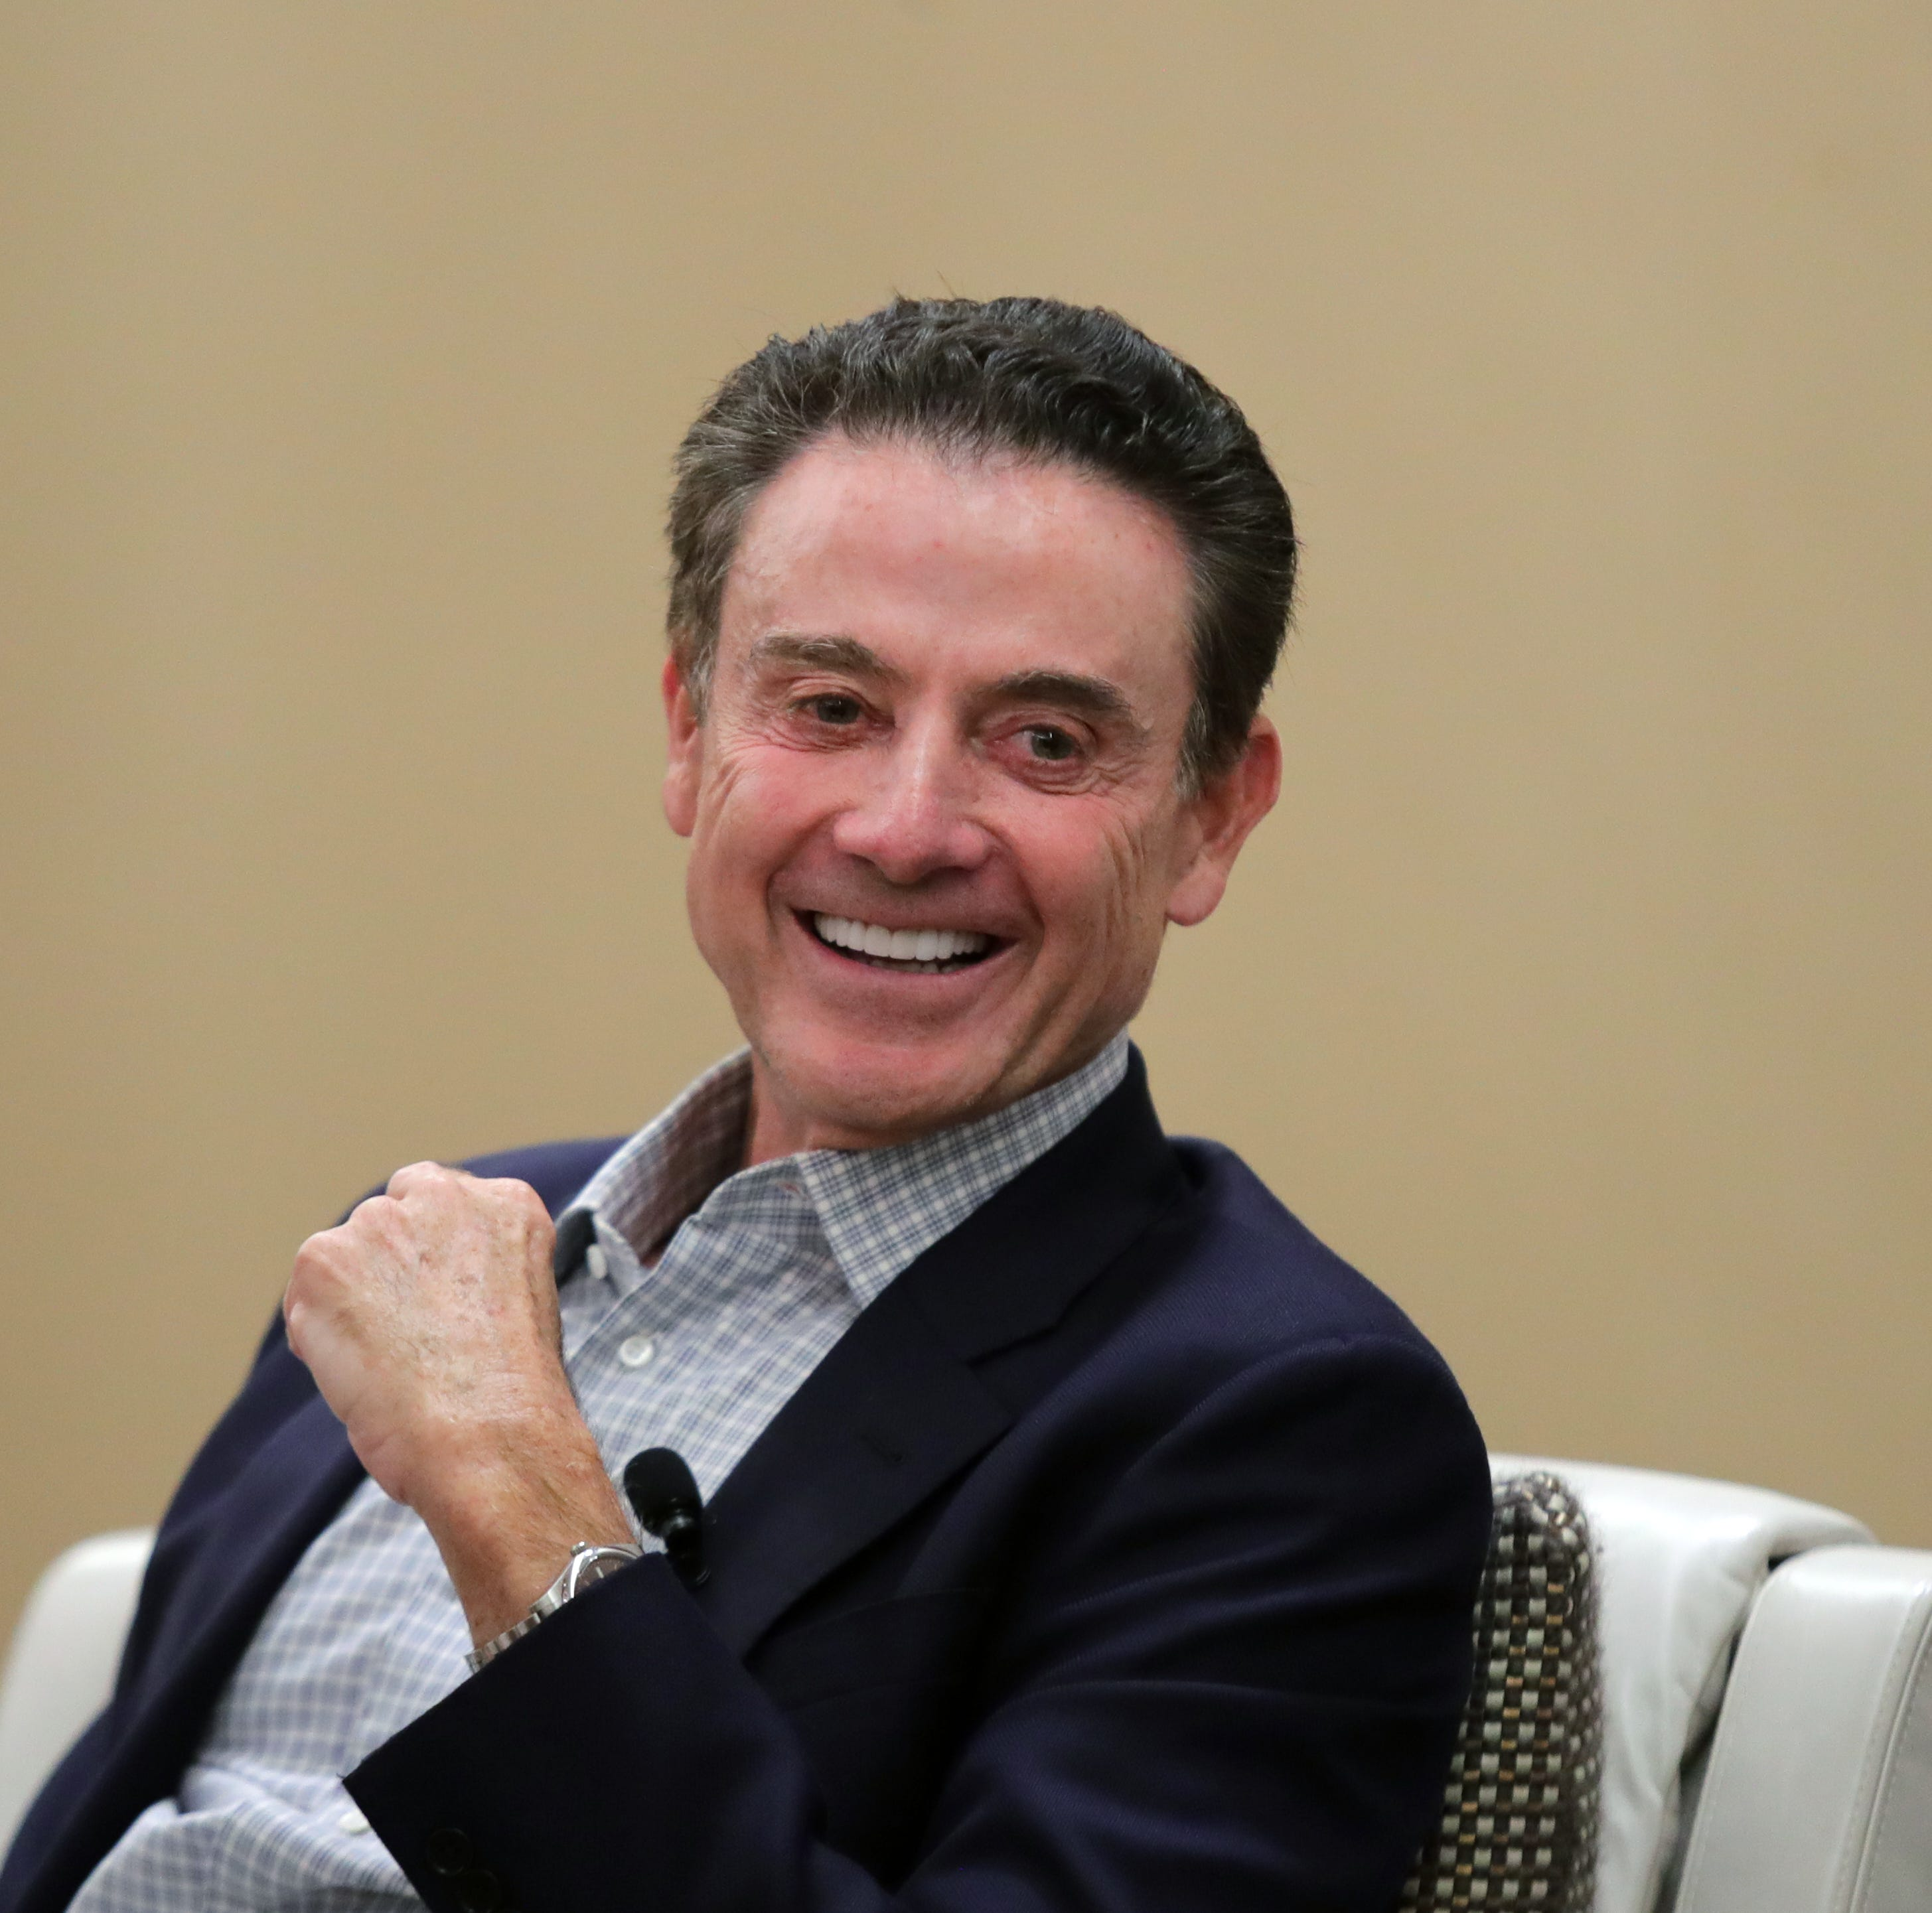 Morning Coffee: Rick Pitino is getting popular all of a sudden in college basketball